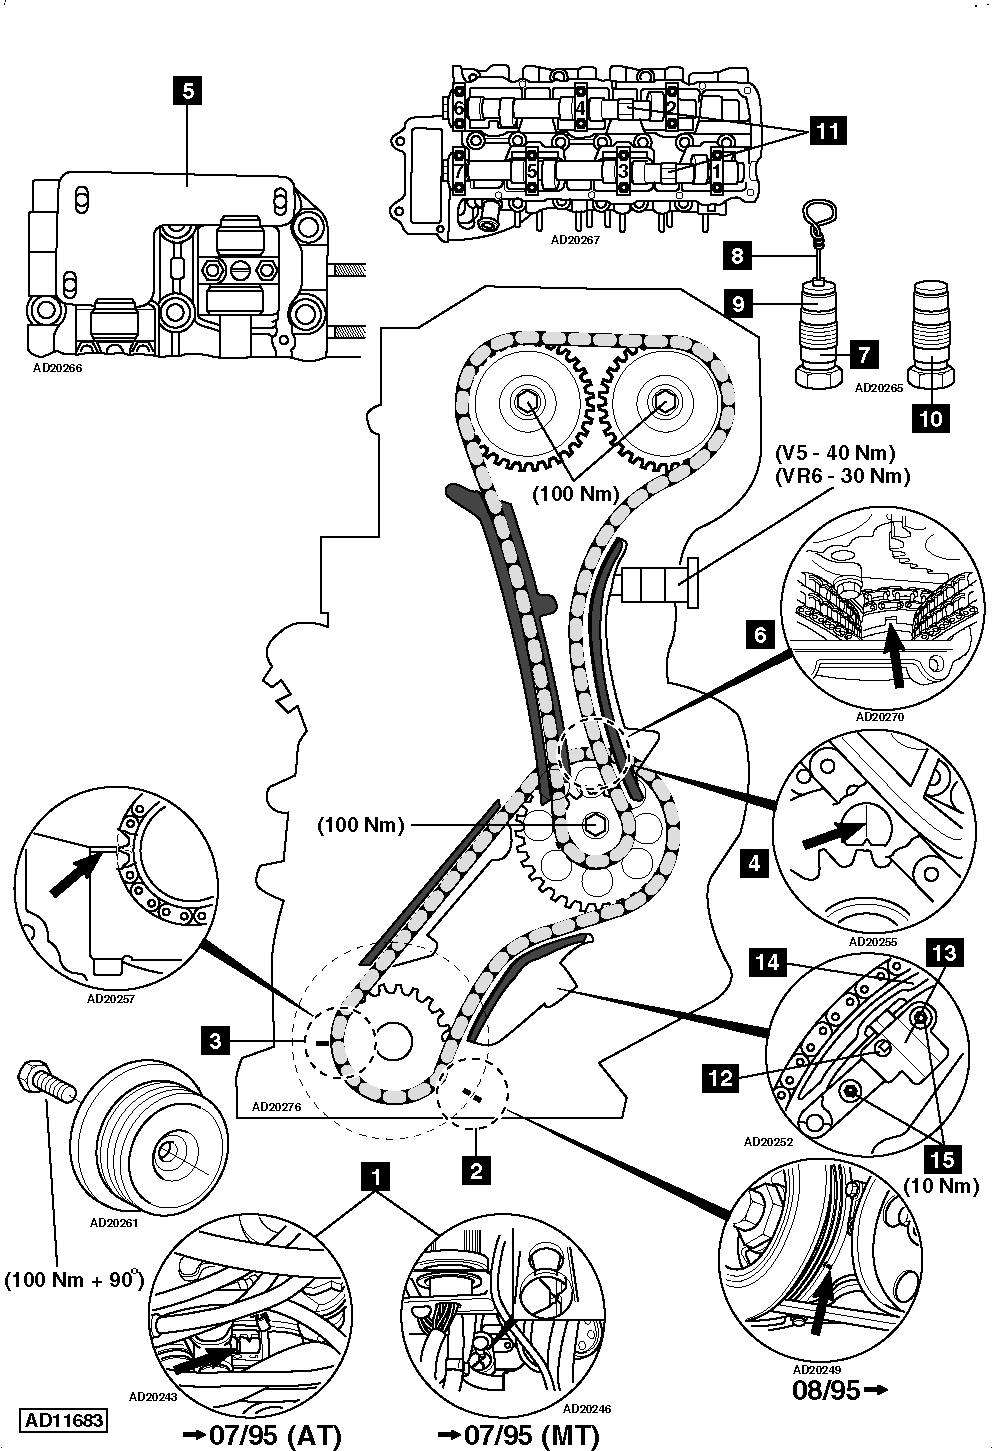 medium resolution of vr6 engine timing diagram wiring diagram forward vr6 engine timing diagram